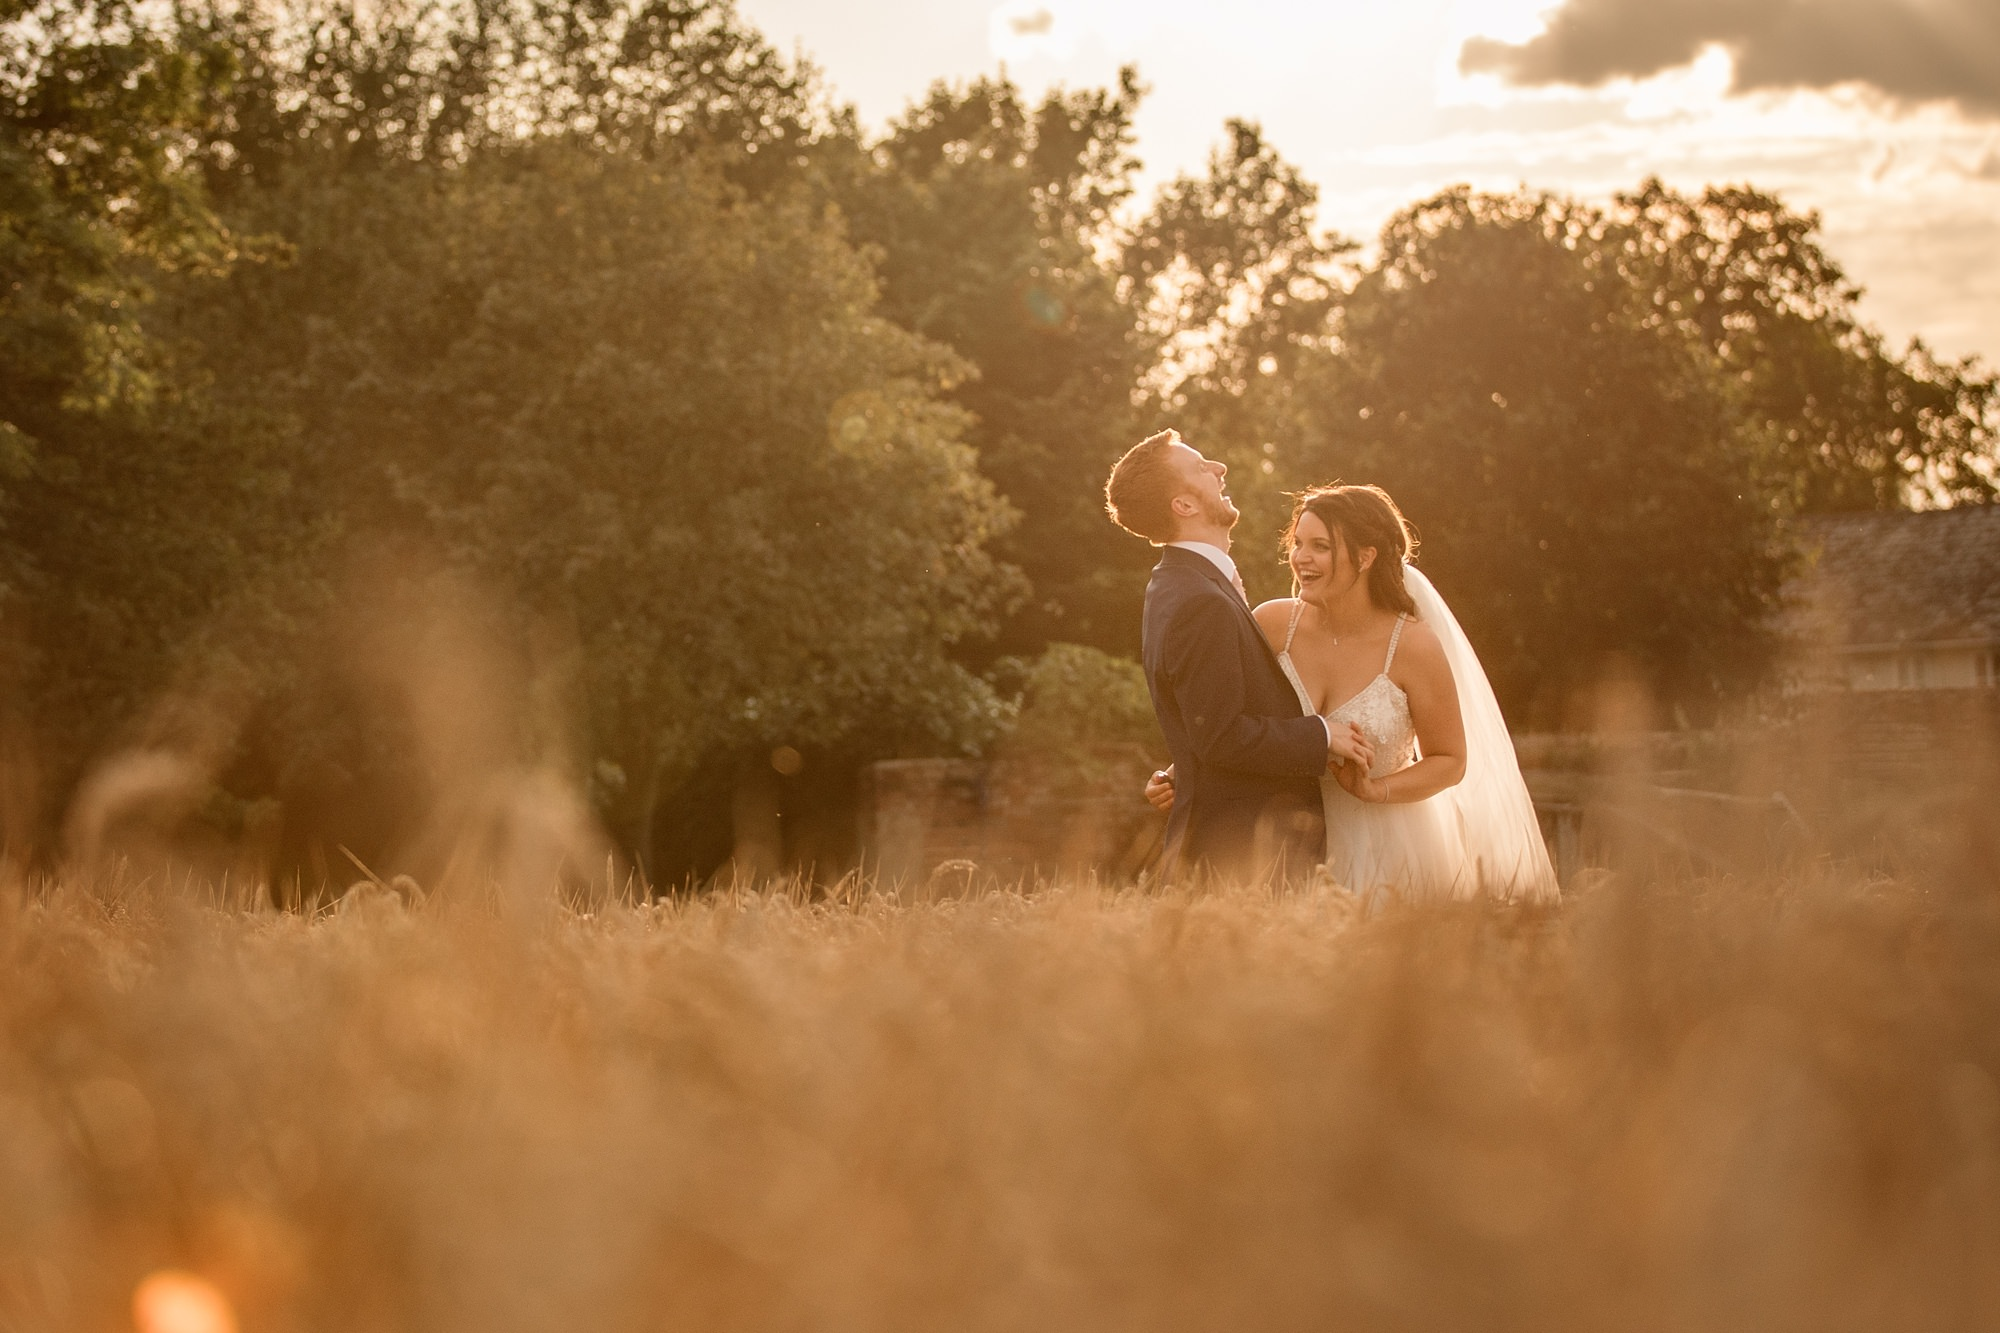 Bride and Groom in evening sun in confield at Granary Estates Wedding taken by Becky Harley Photography